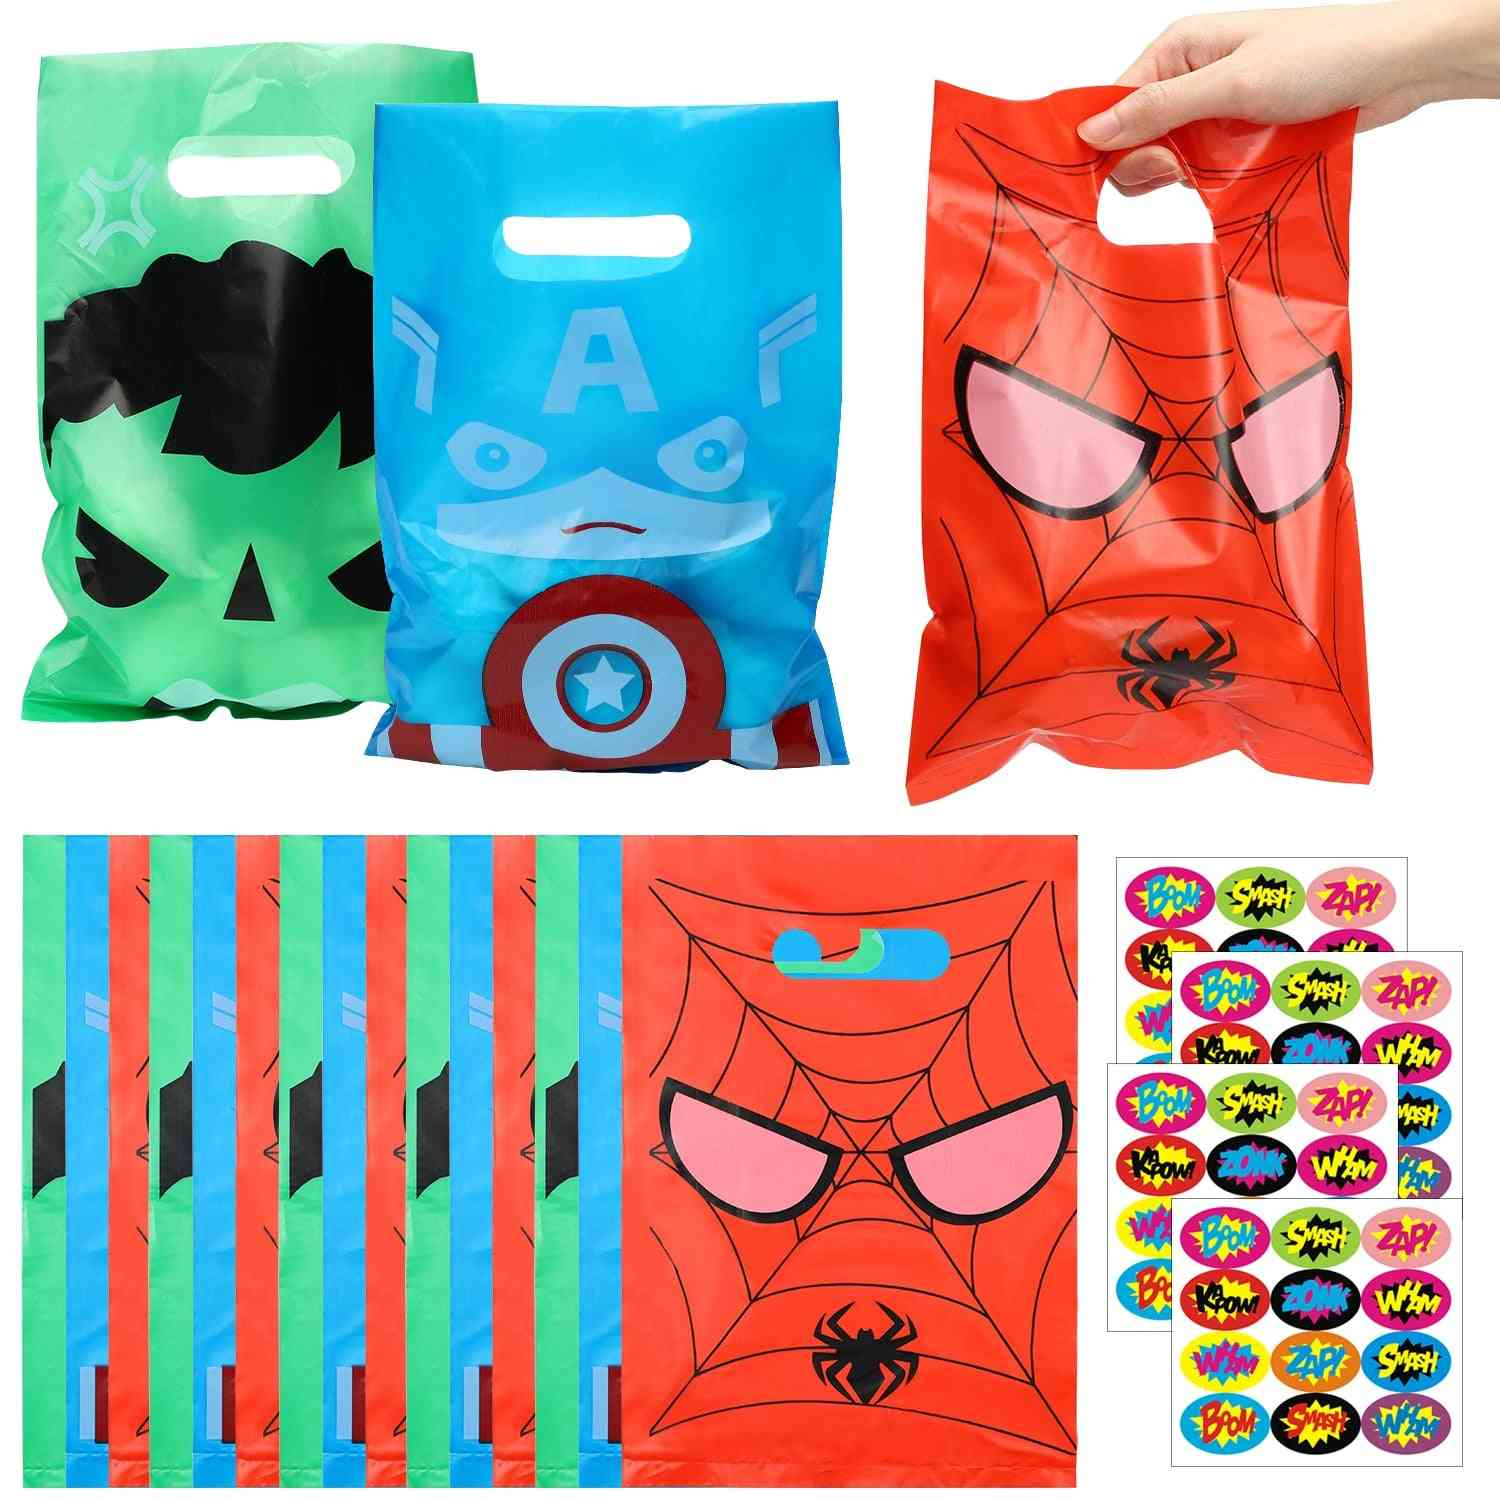 Superhero Plastic Bag With Sticker, Goodies Candy Bags, Party Decoration For Kids